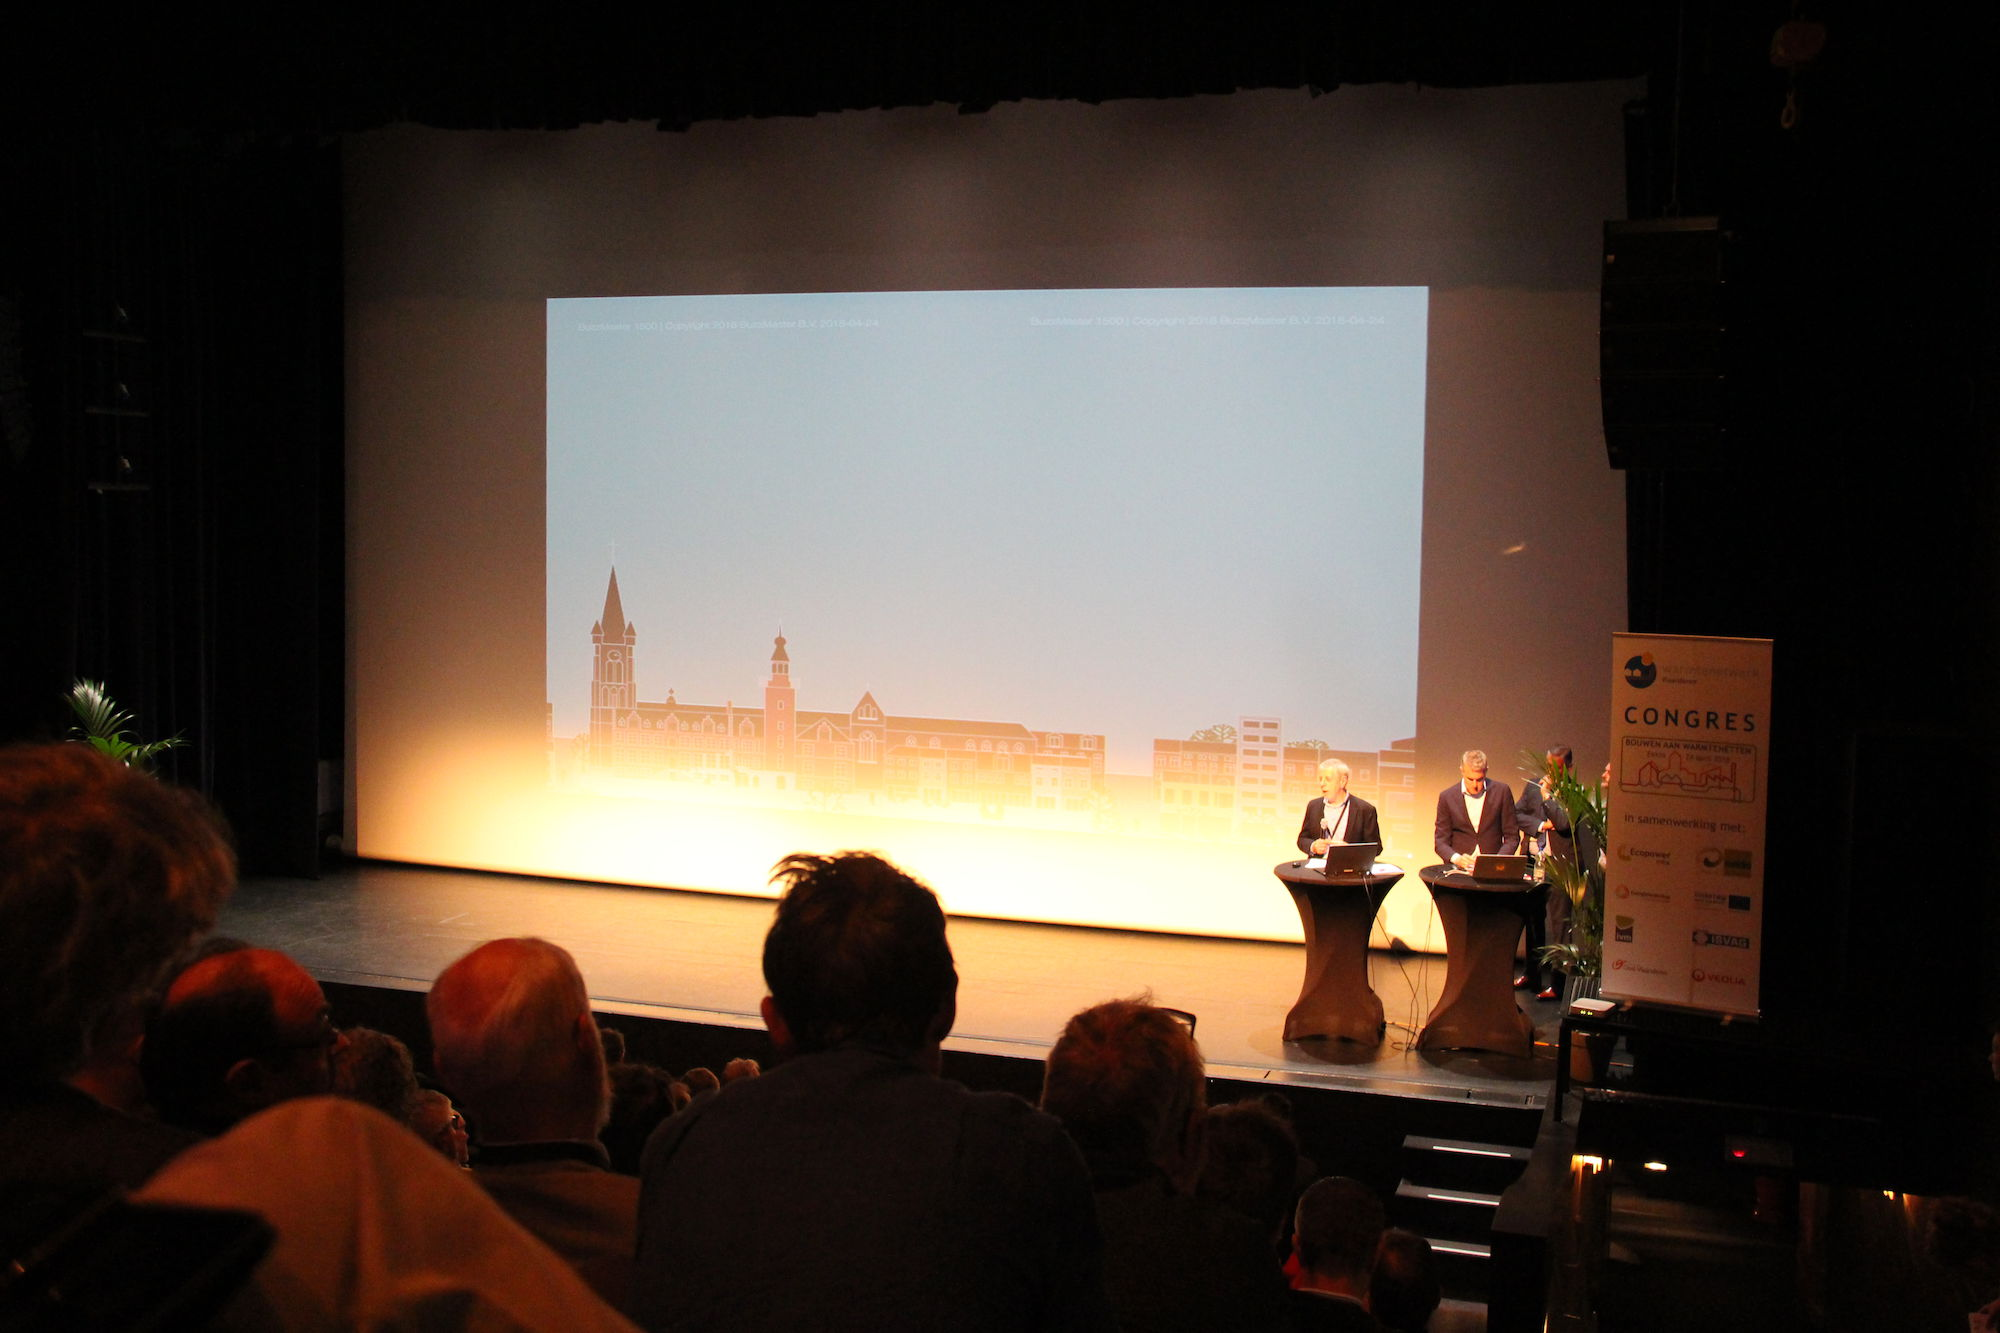 20180424_warmtecongres_VM_00057.JPG